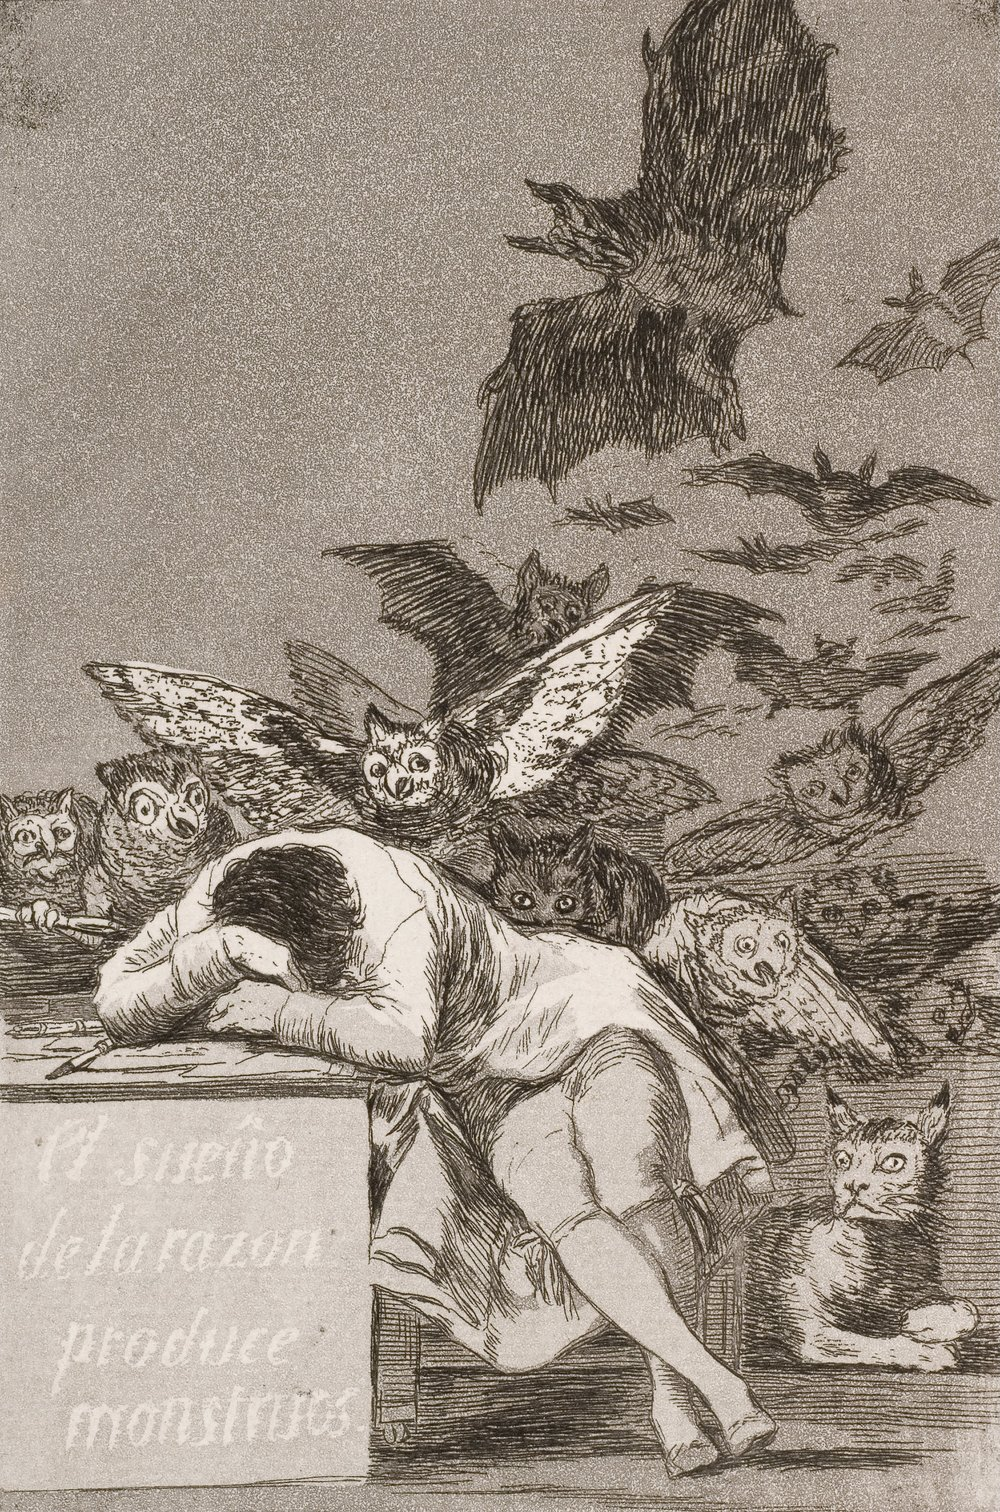 Francisco de Goya (c. 1797)   The Sleep of Reason Produces Monsters   (El sueño de la razón produce monstruos )   Plate 43 of the 80 in the  Los Caprichos  series. Etching aquatint, drypoint and burin.